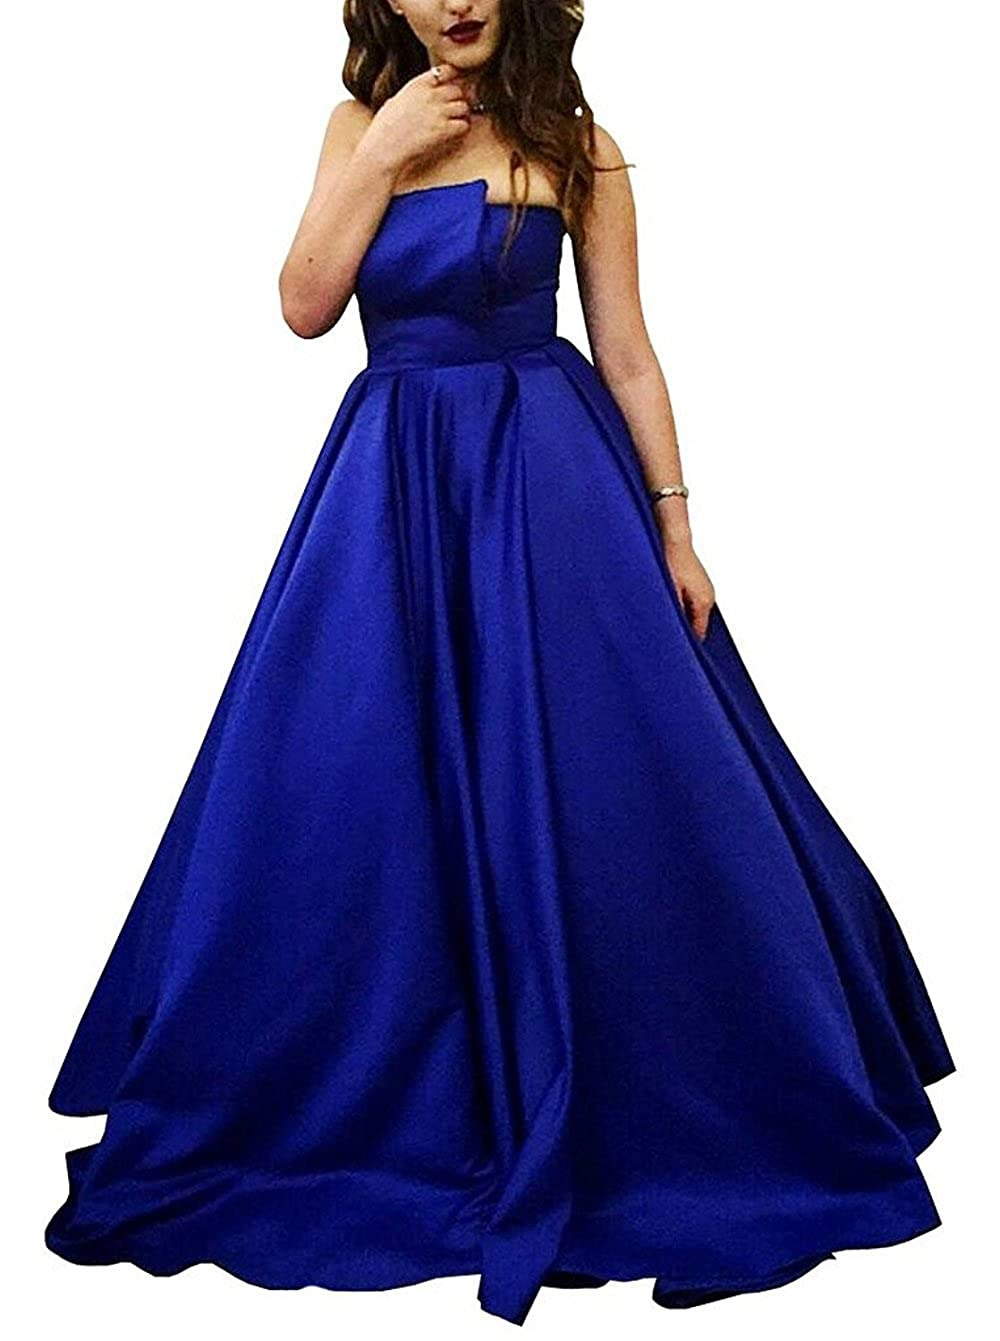 bcaf8ea8f499 YuNuo Prom Dress Royal Blue Strapless Back Lace Up Homecoming Dress A-line  Floor Length Evening Gown at Amazon Women's Clothing store: